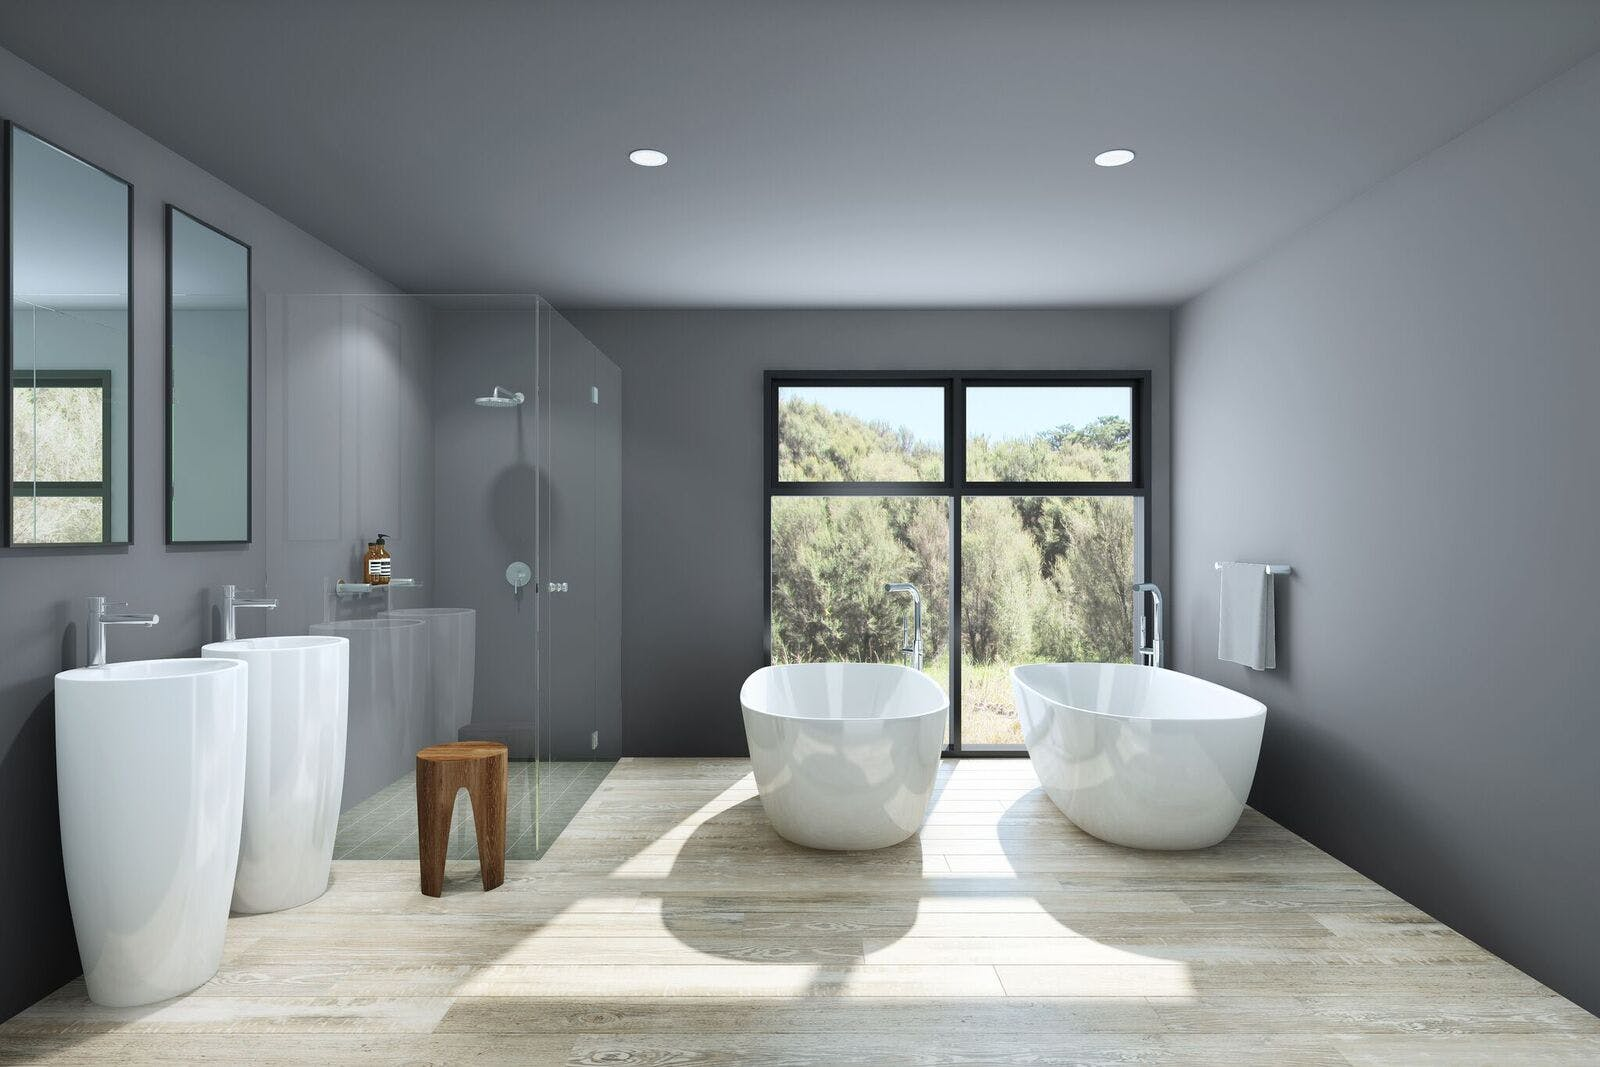 Artisit impression of bathroom. Enjoy a relaxing bath with the two of you while looking out over the native bush.